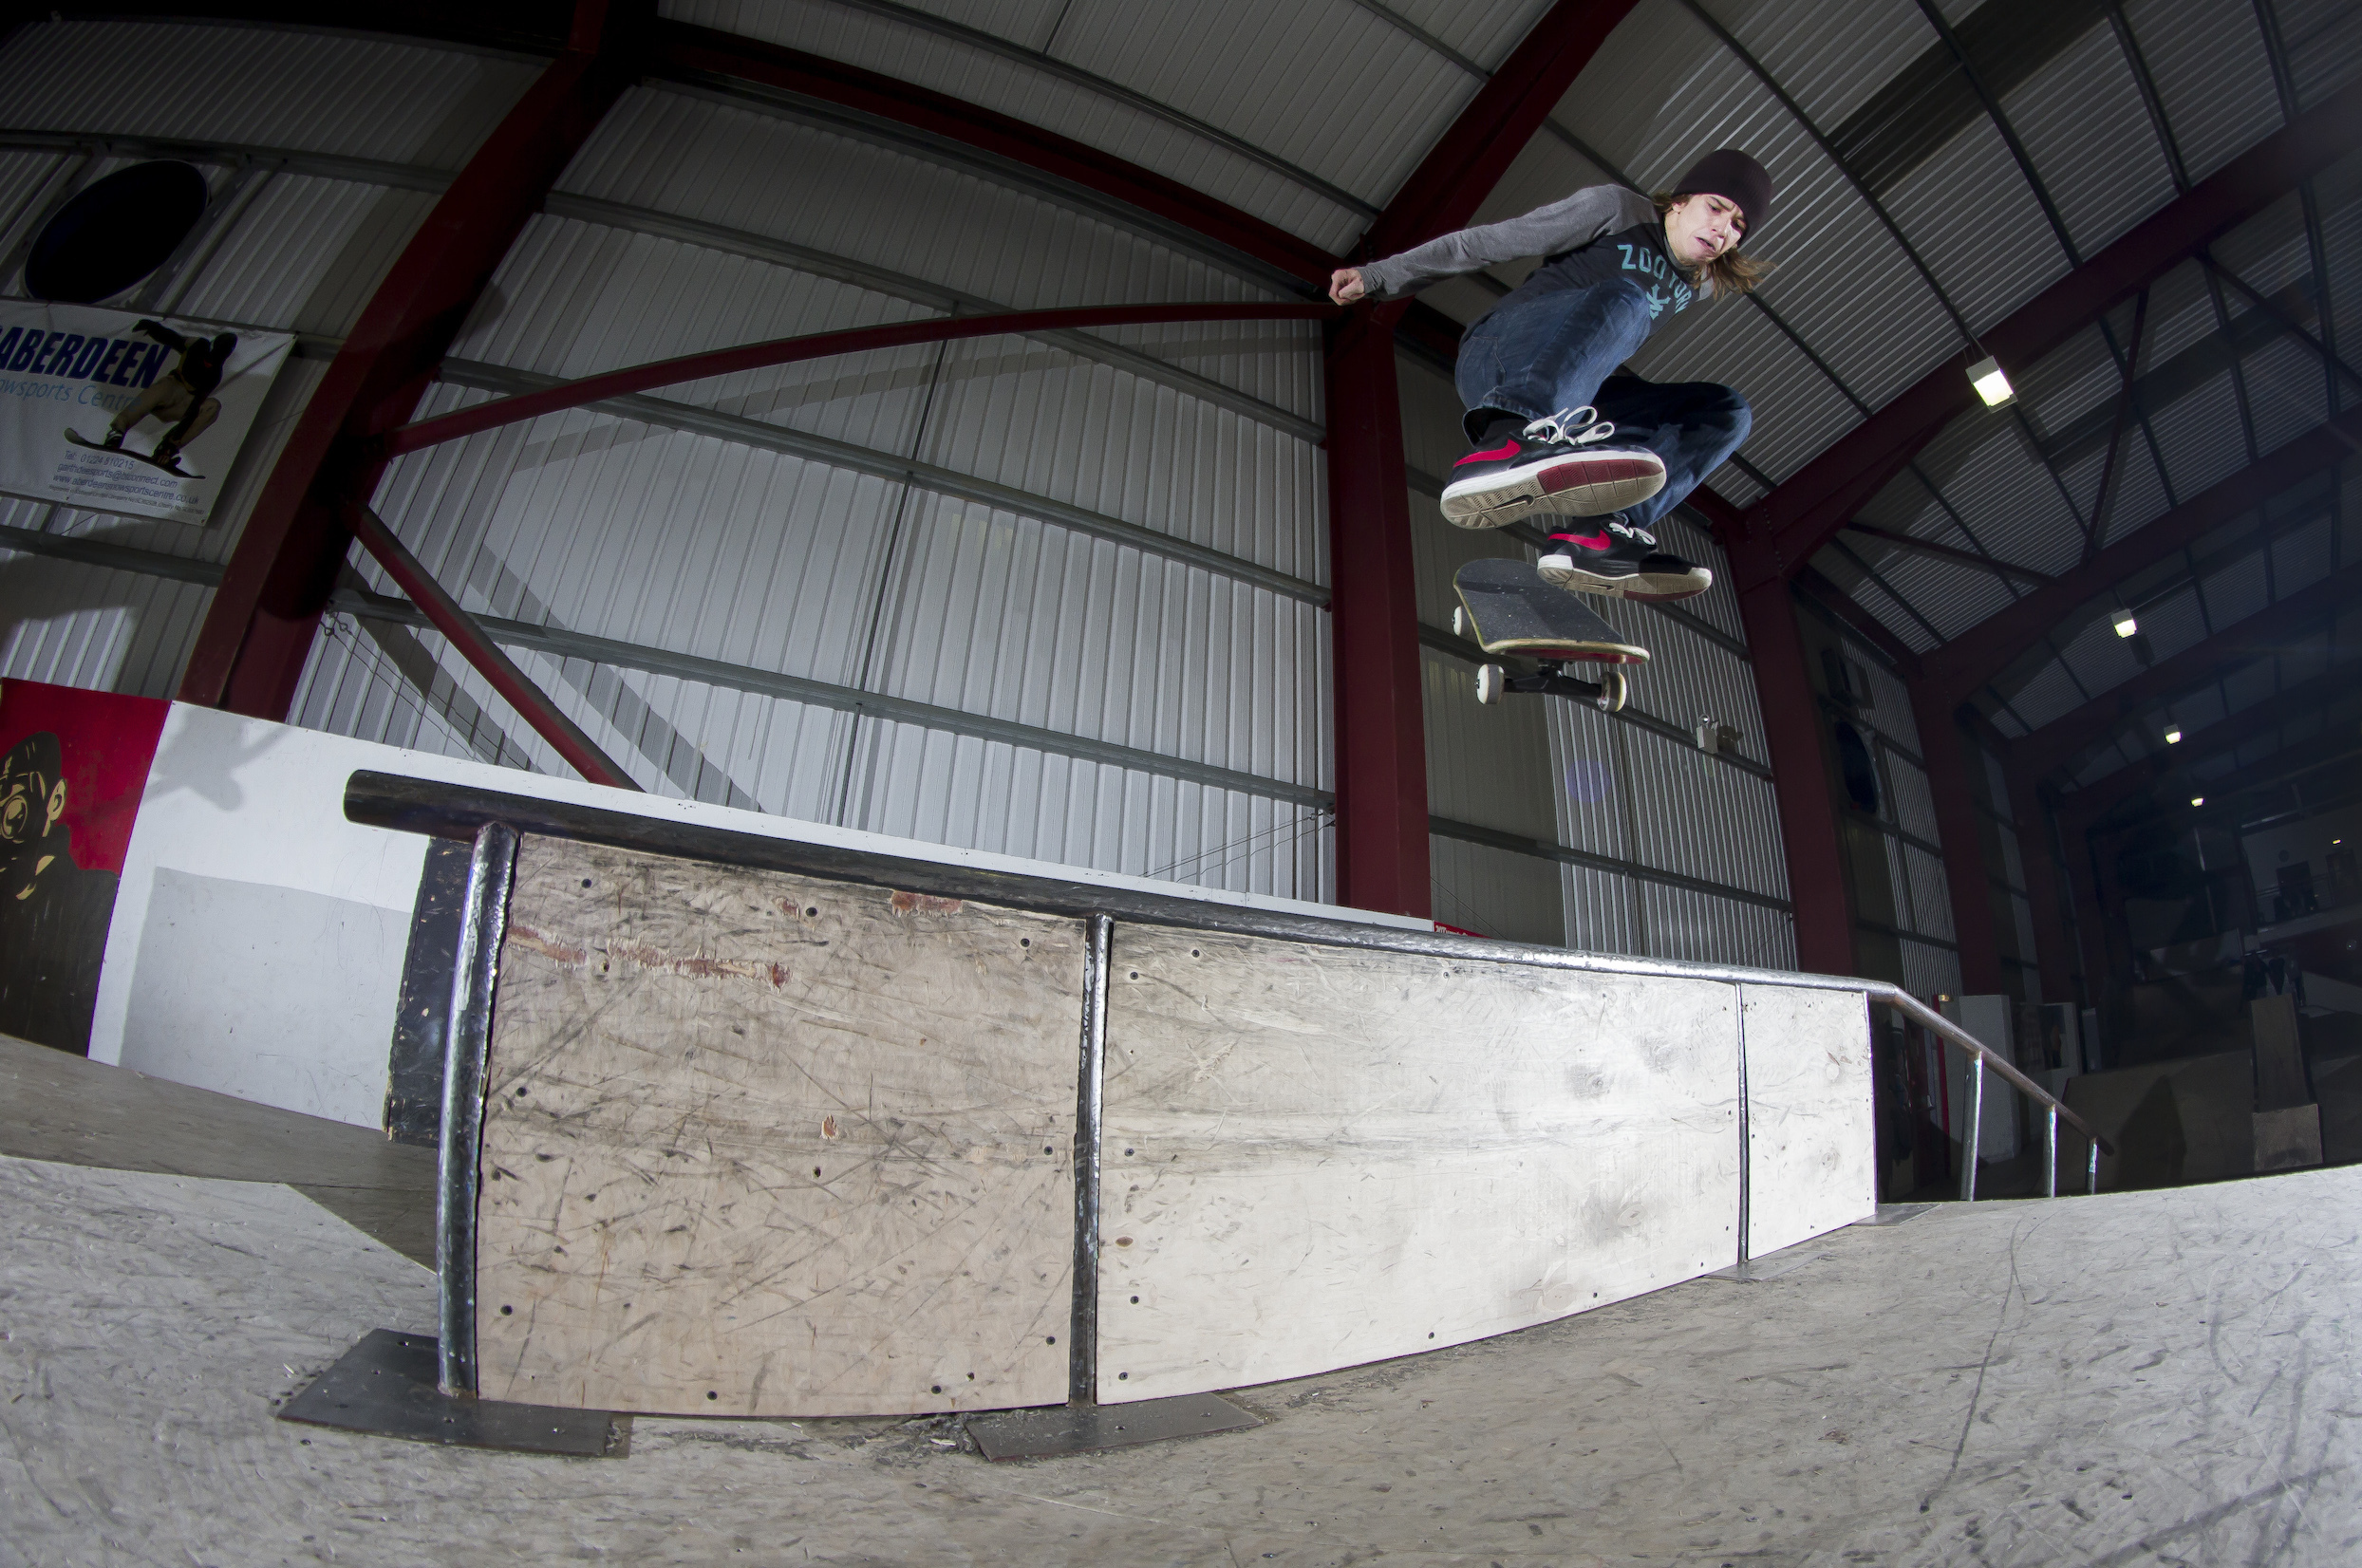 Transition Extreme's Matthew Smith puts the current park through its paces